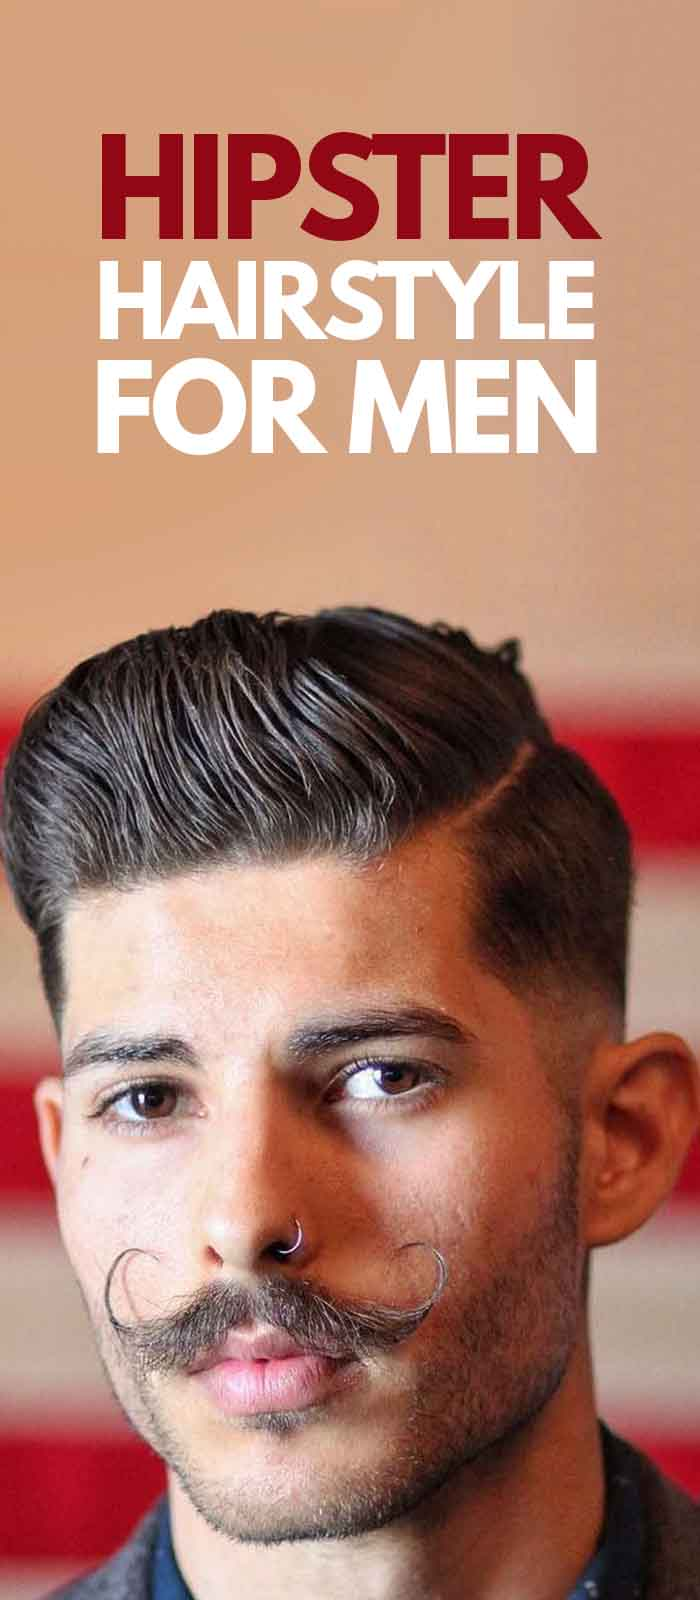 Hipster Hairstyles For Men 2019.